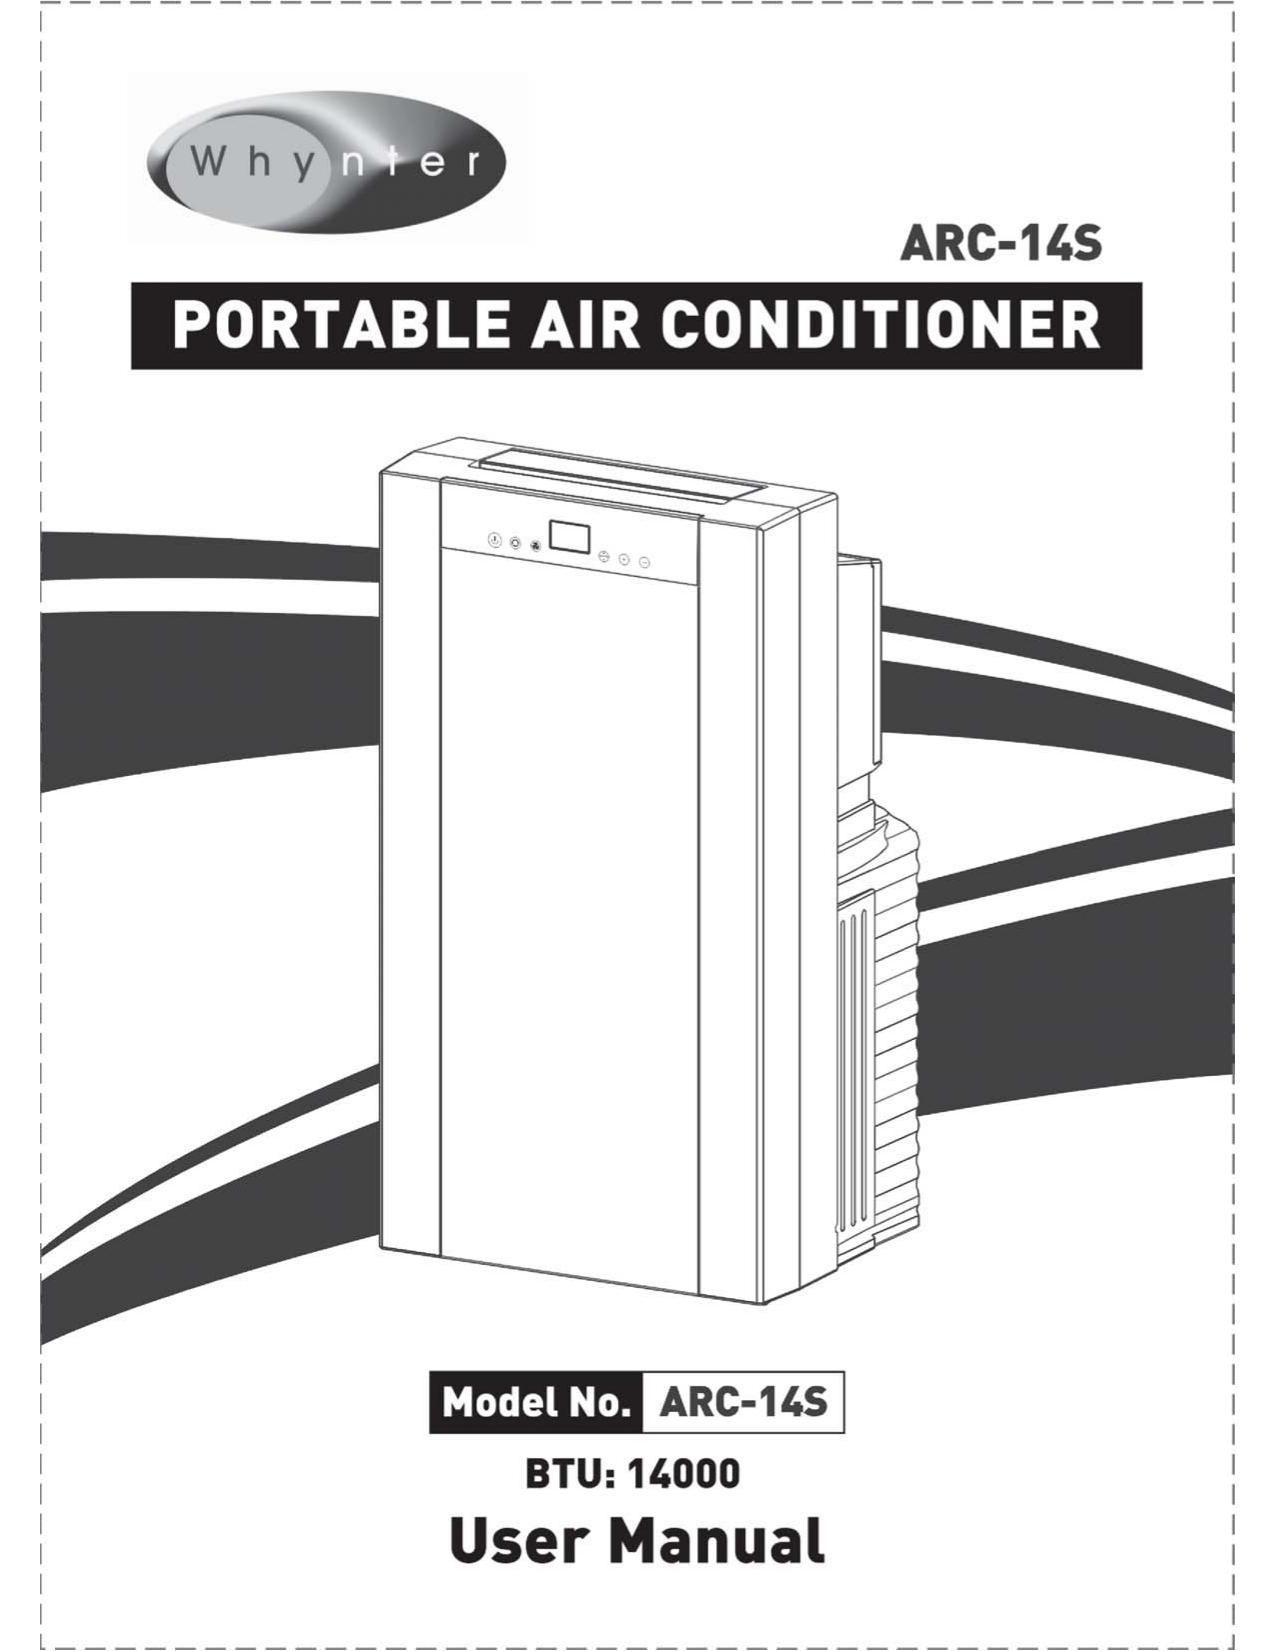 pdf for Whynter Air Conditioner ARC-14S manual